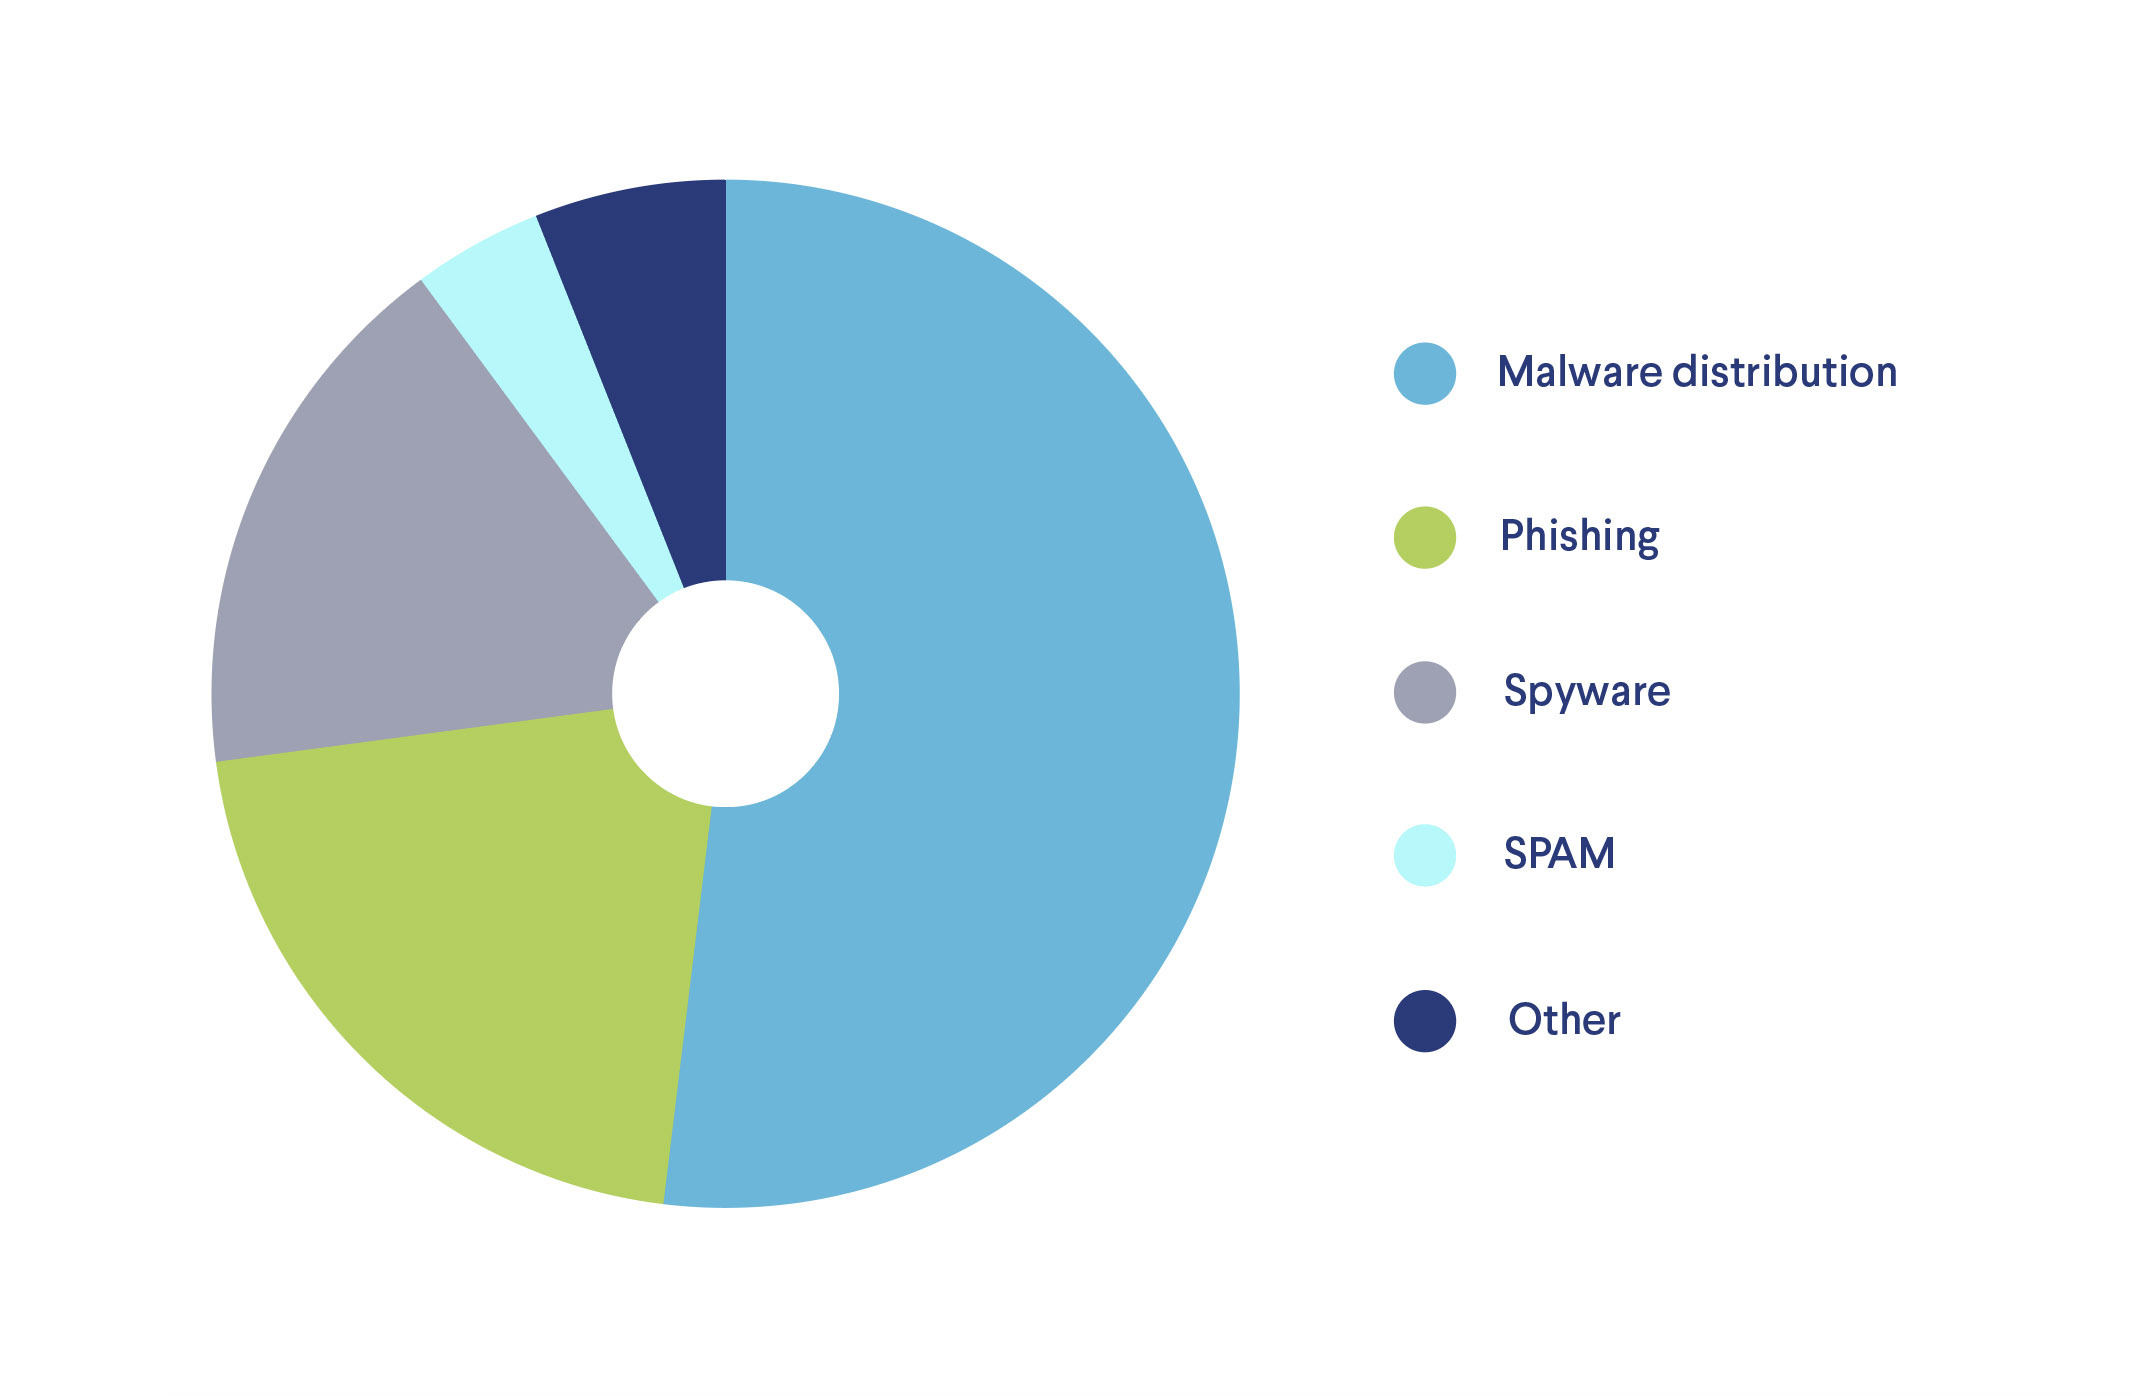 Top mobile browsing threats come from malware, phishing, spyware, and spam websites